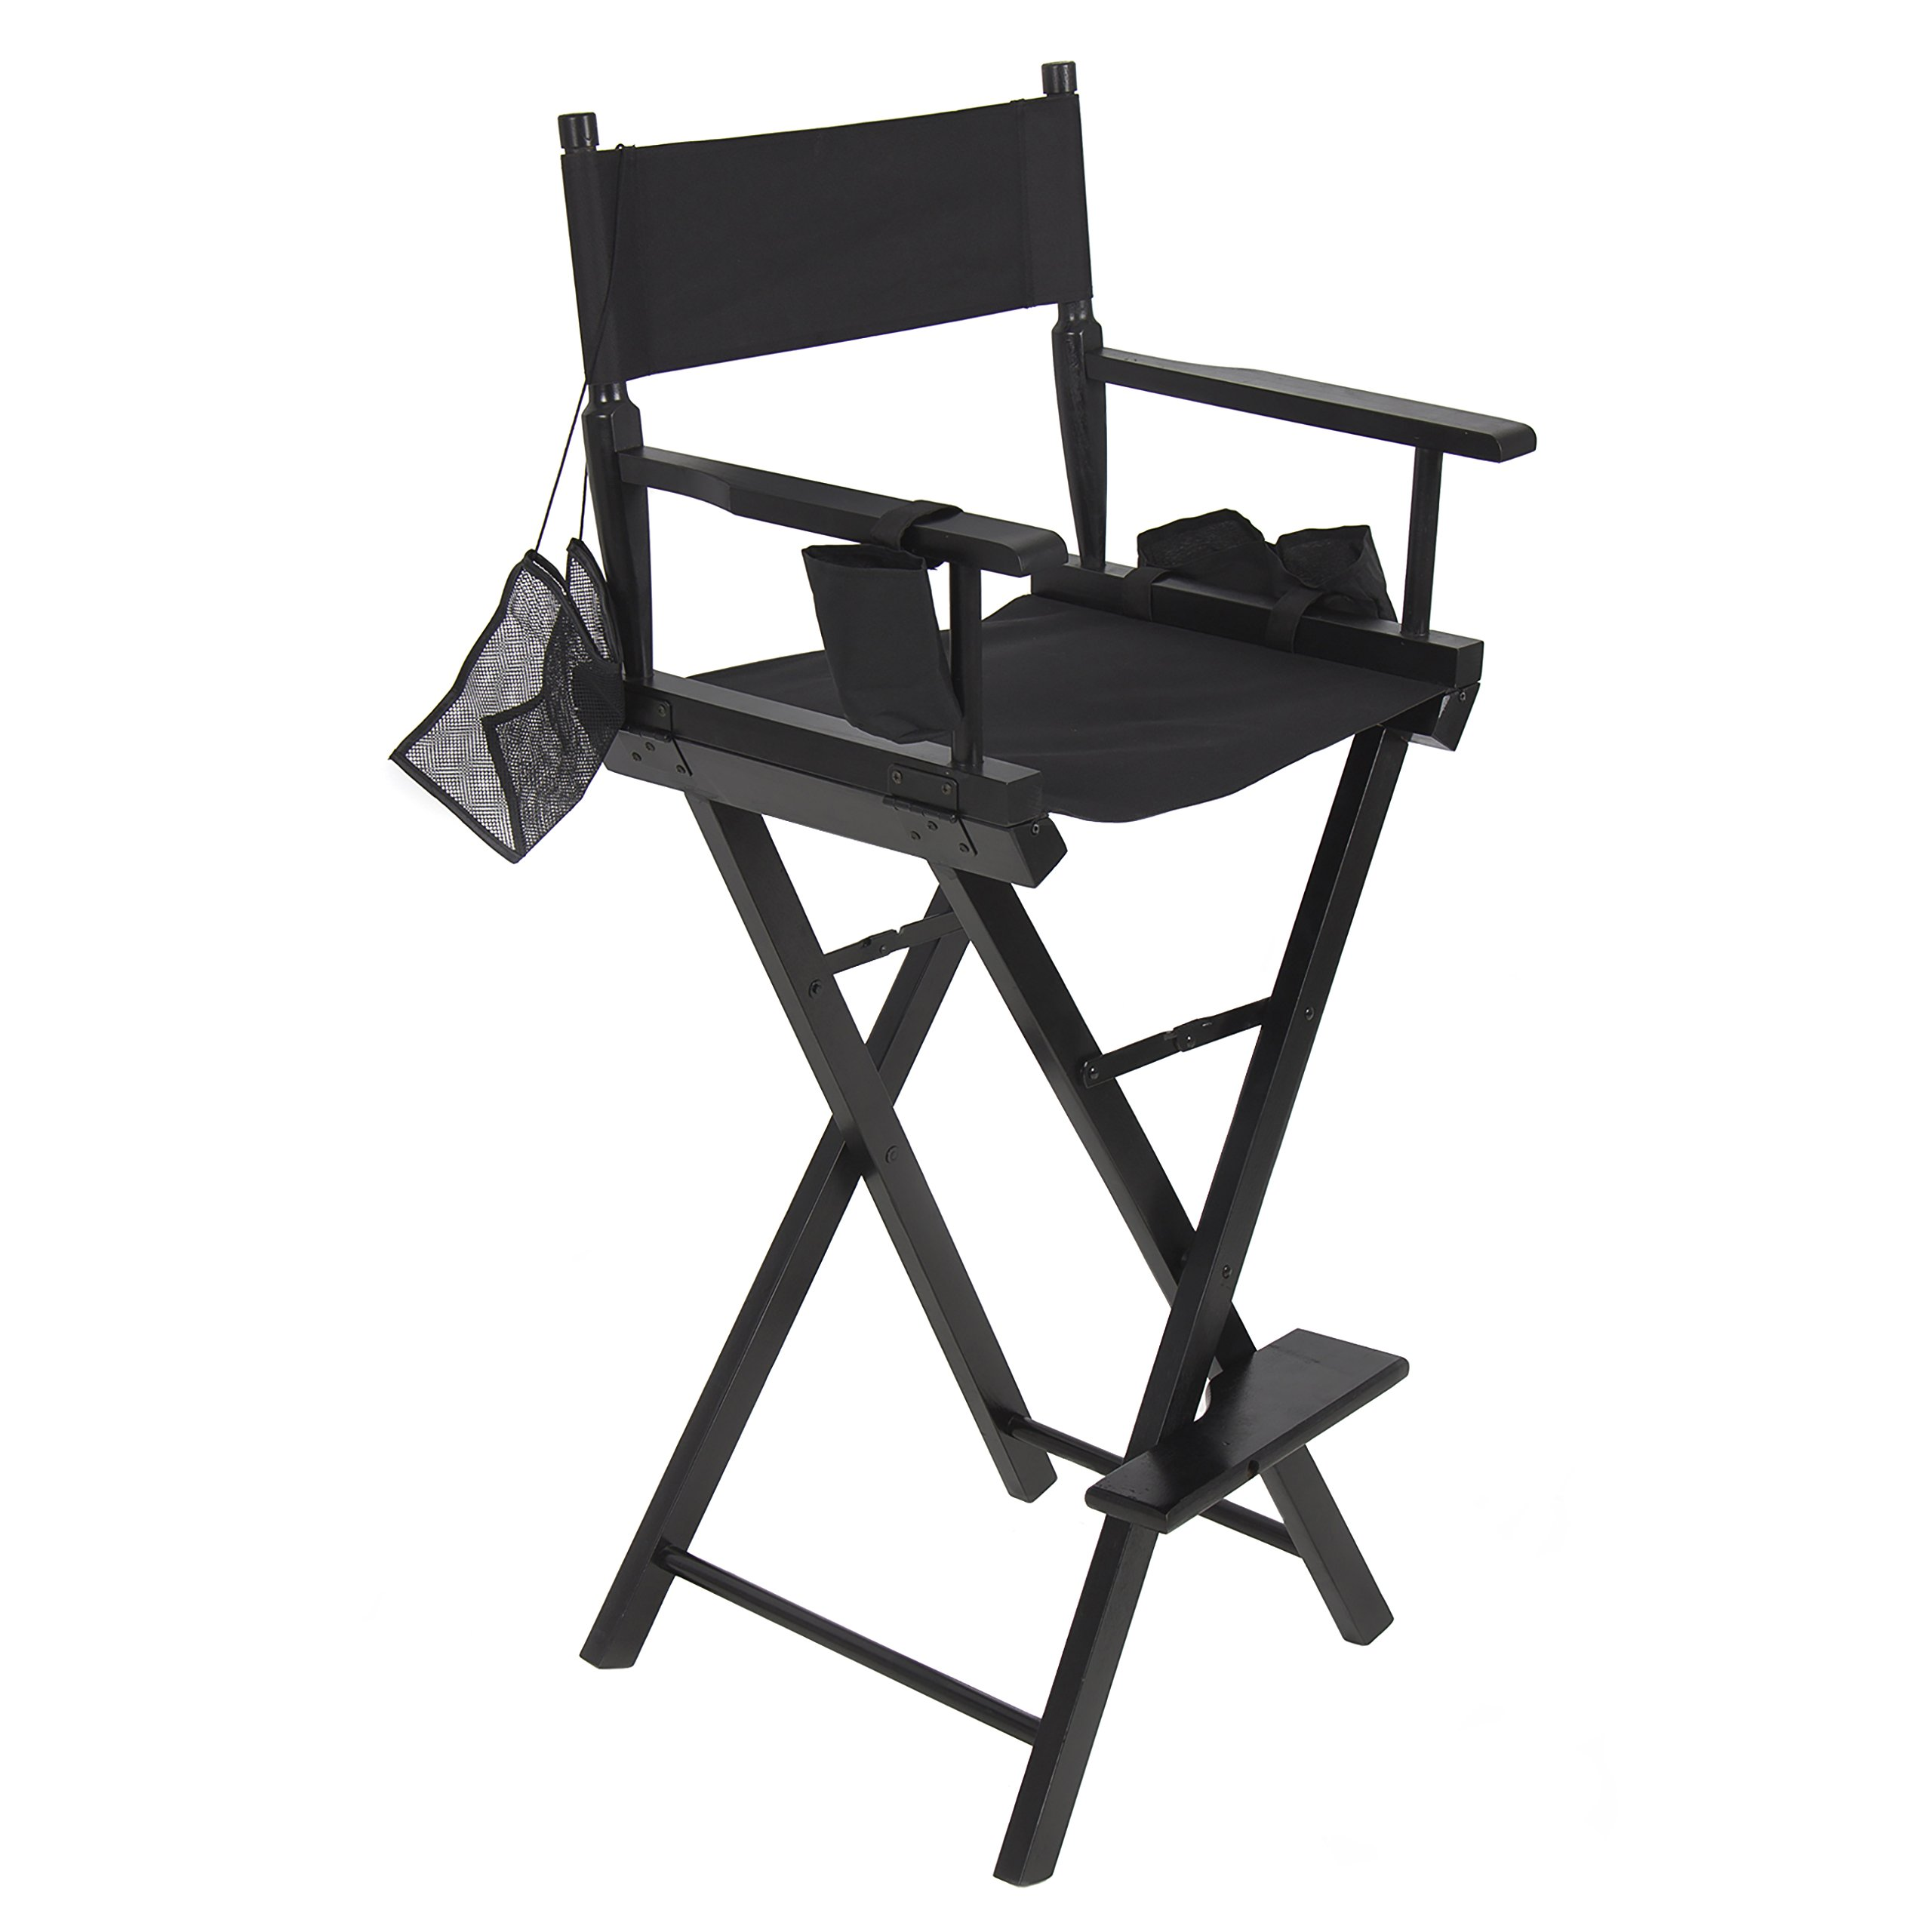 Professional Makeup Artist Directors Chair Light Weight Foldable New by Best Choice Products